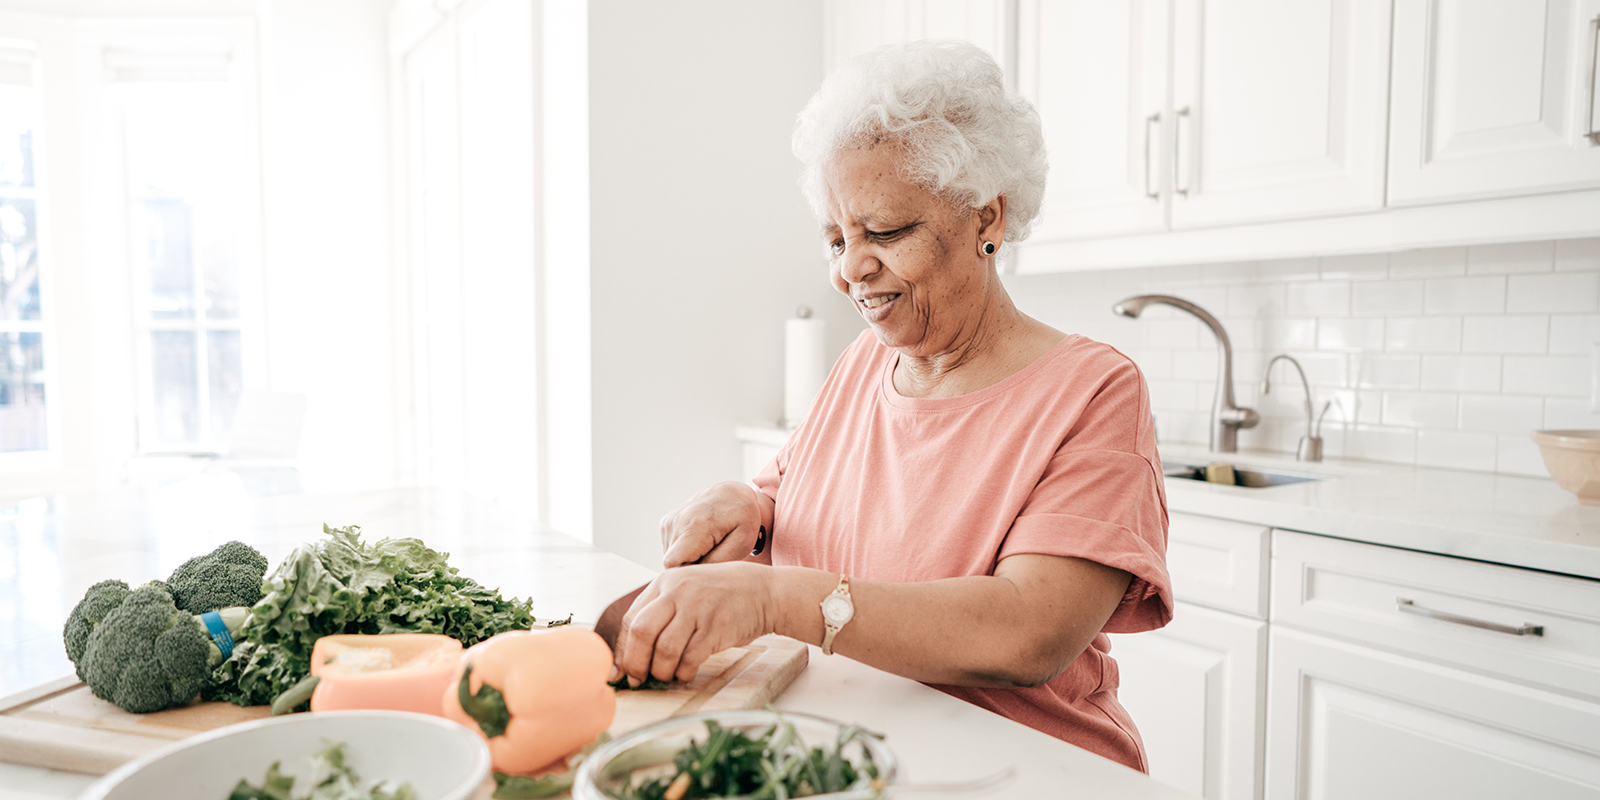 elderly woman chopping vegetables in kitchen